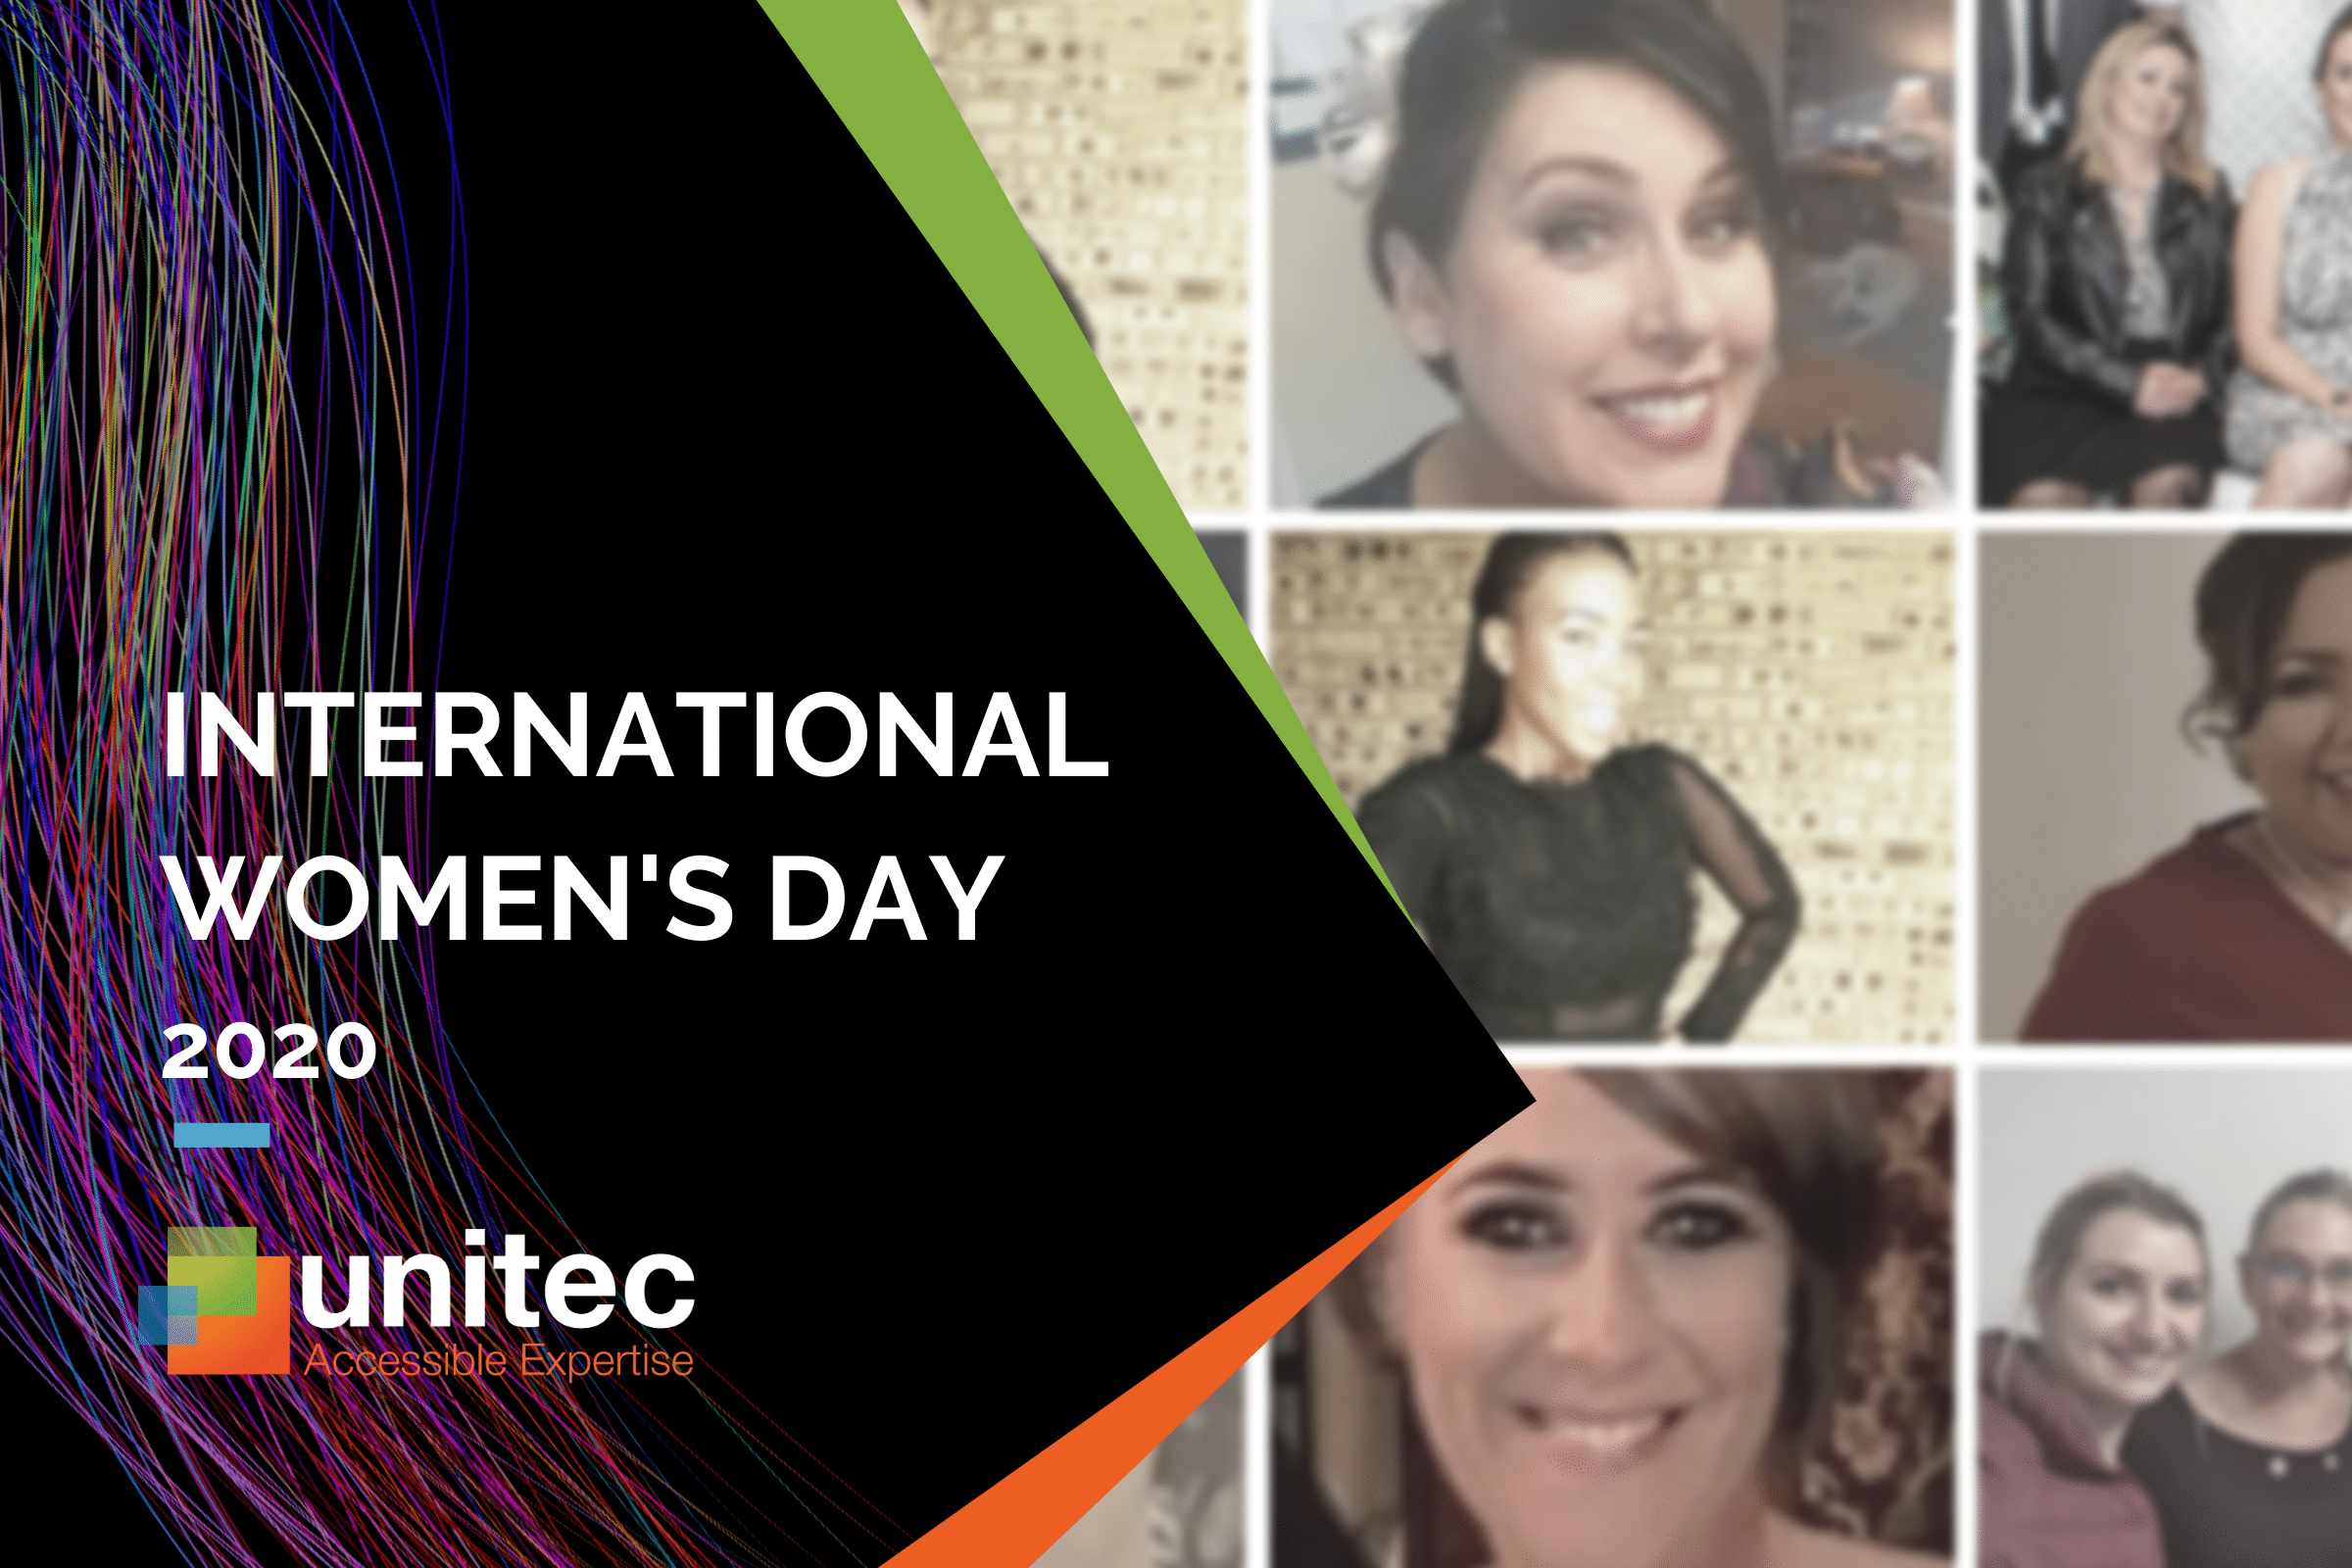 For International Women's Day 2020, Unitec thanks all the amazing women who are part of our team